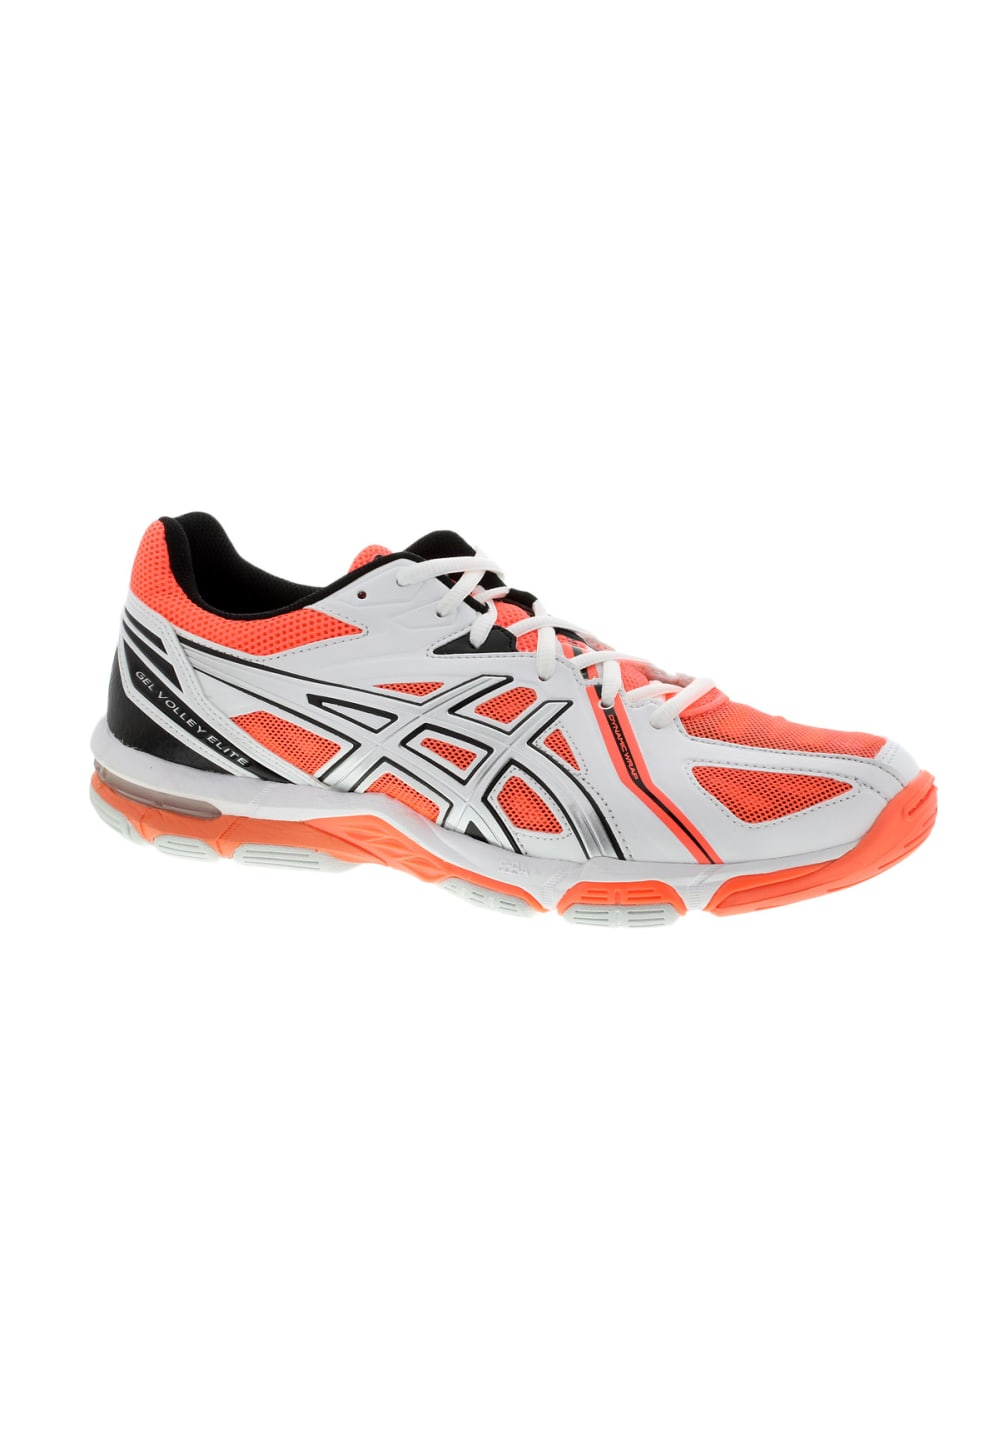 ASICS GEL-Volley Elite 3 - Volleyball shoes for Women - White